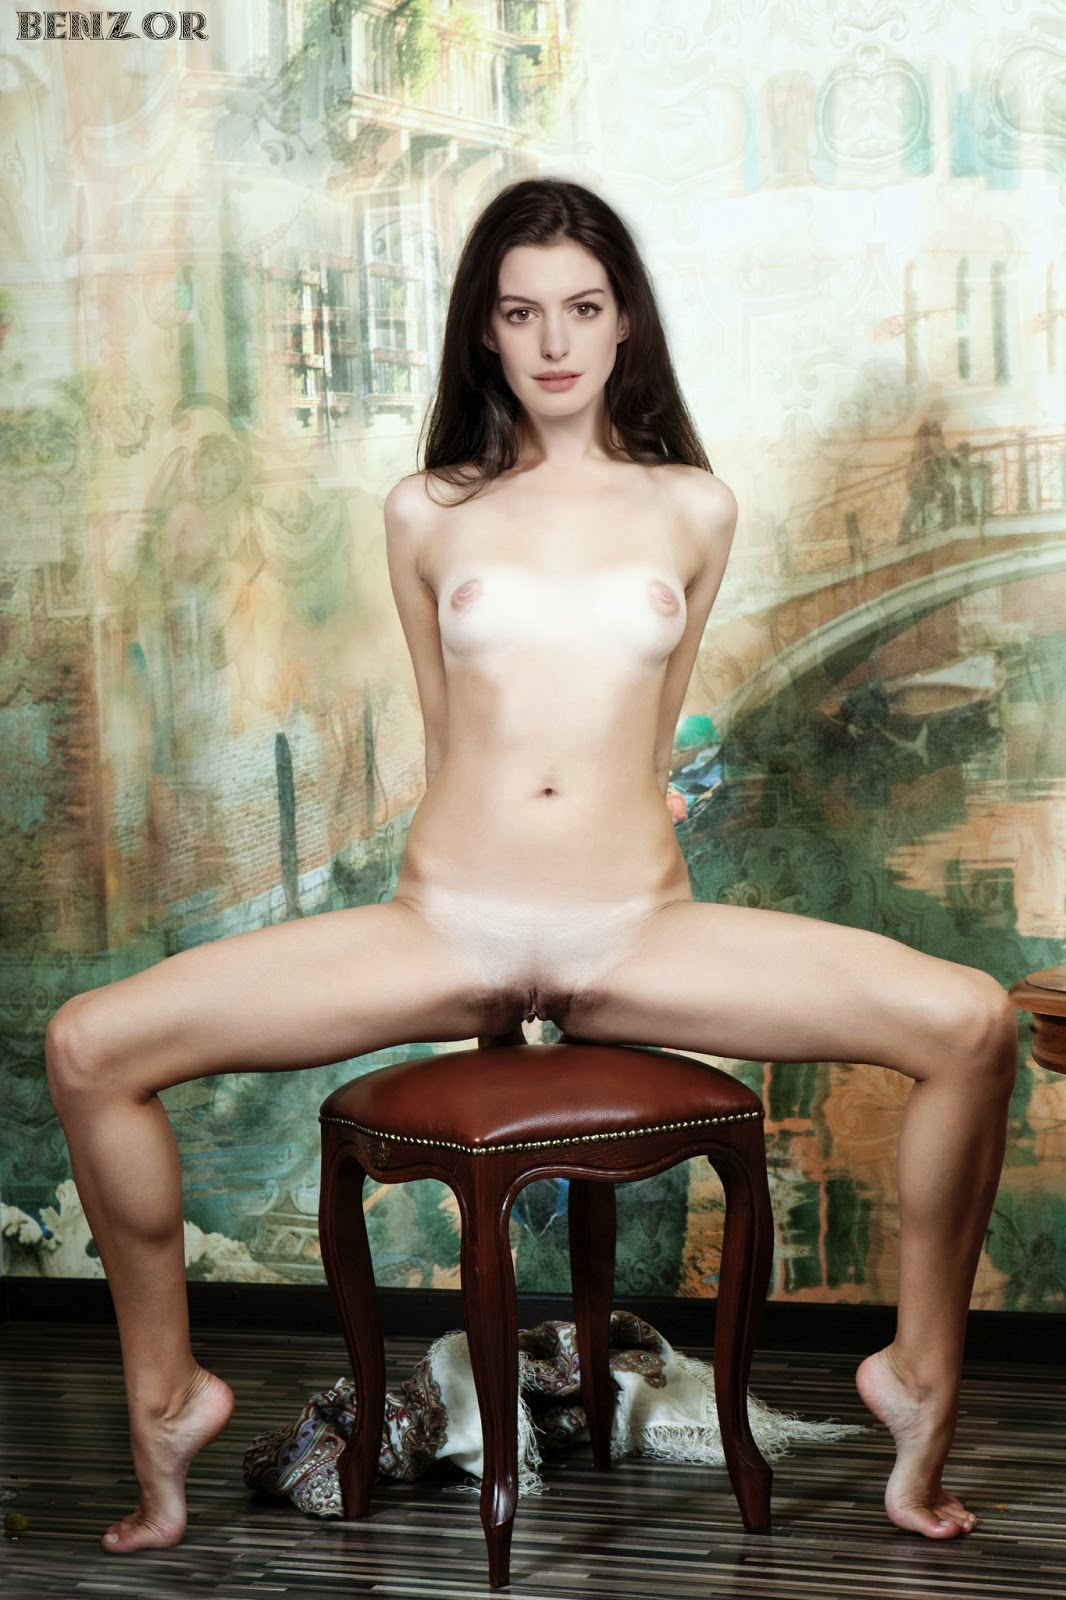 Hathaway fakes pictures Anna nude